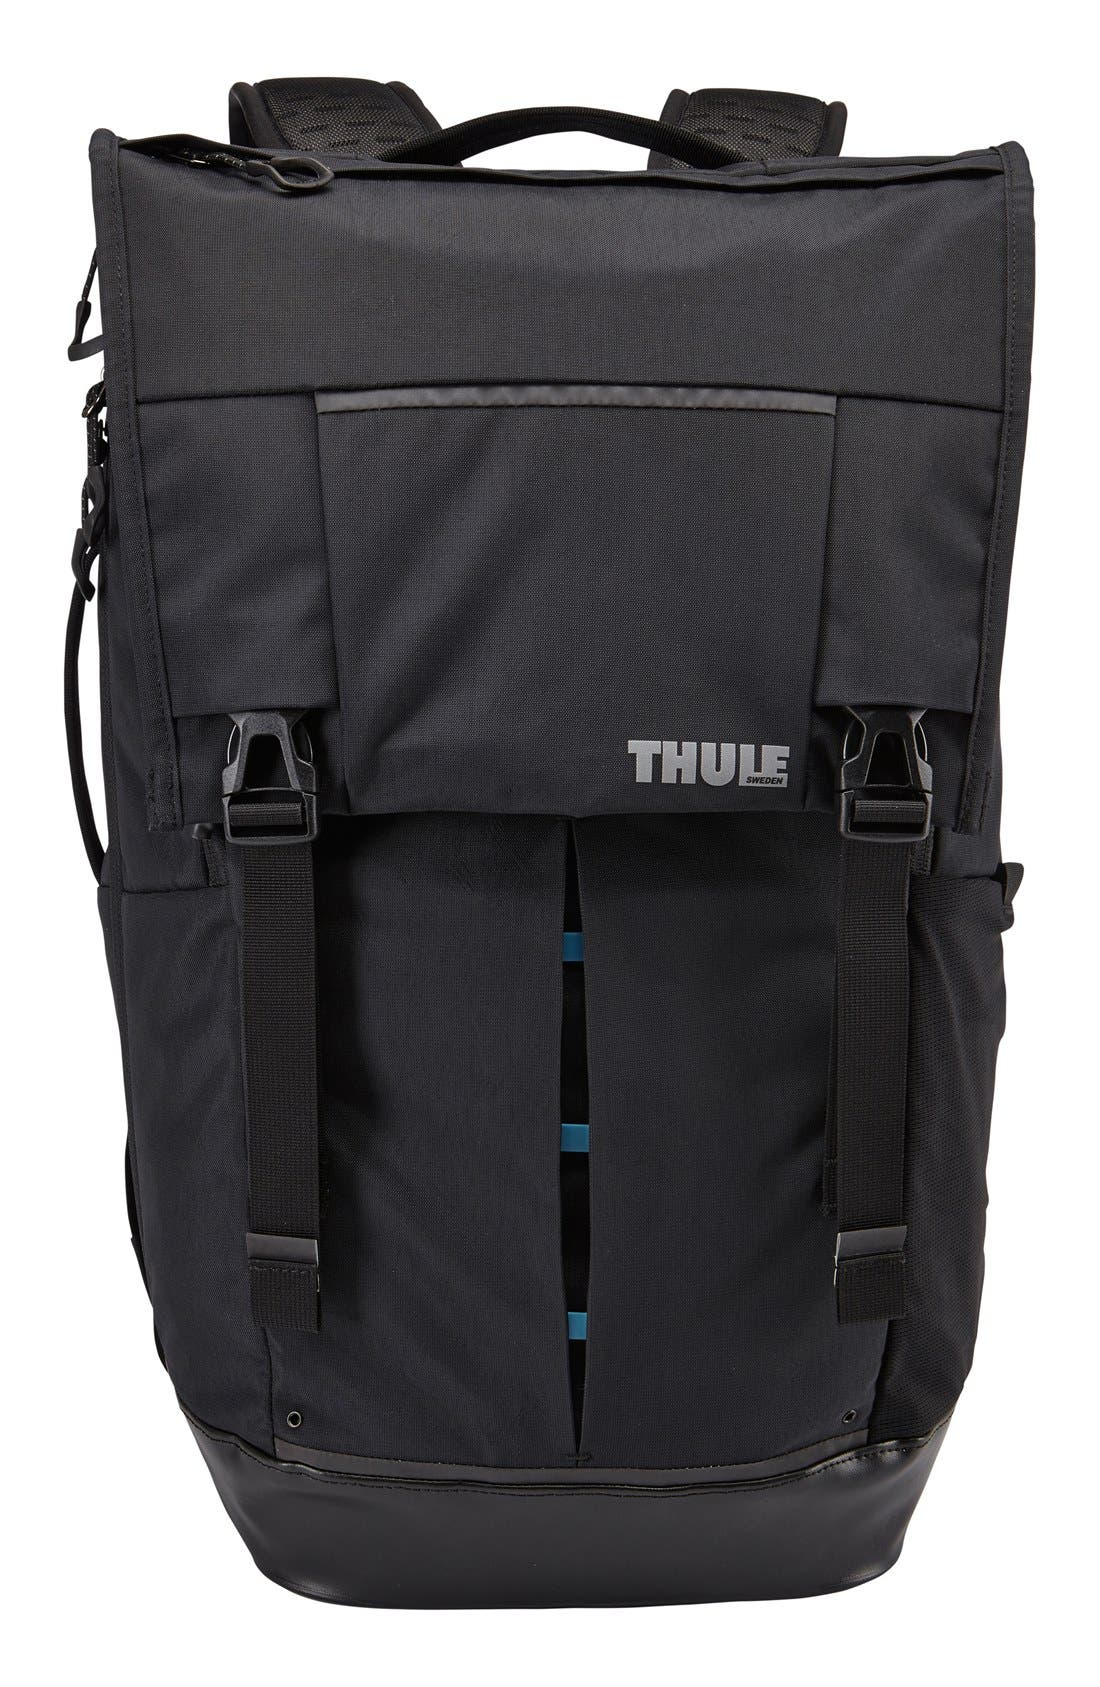 THULE Paramount 29-Liter Backpack